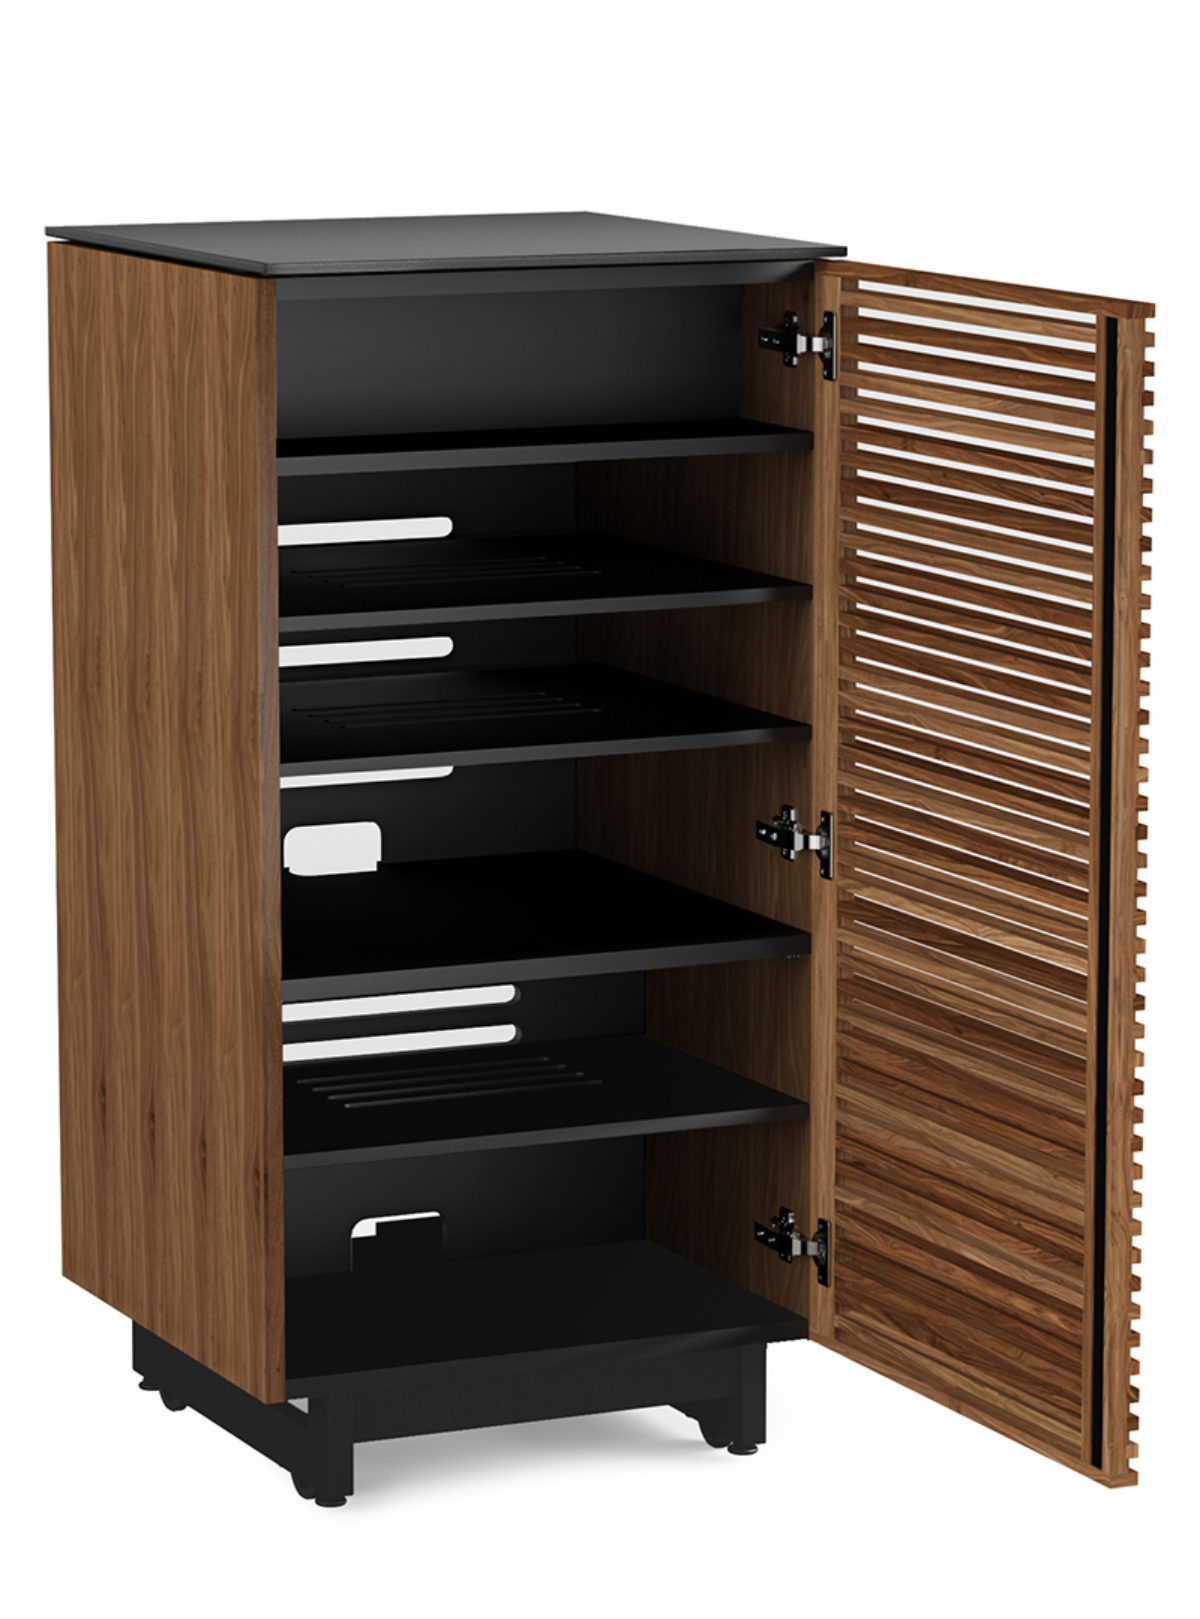 The Corridor modern audio and stereo tower in natural walnut with built in ventilation.